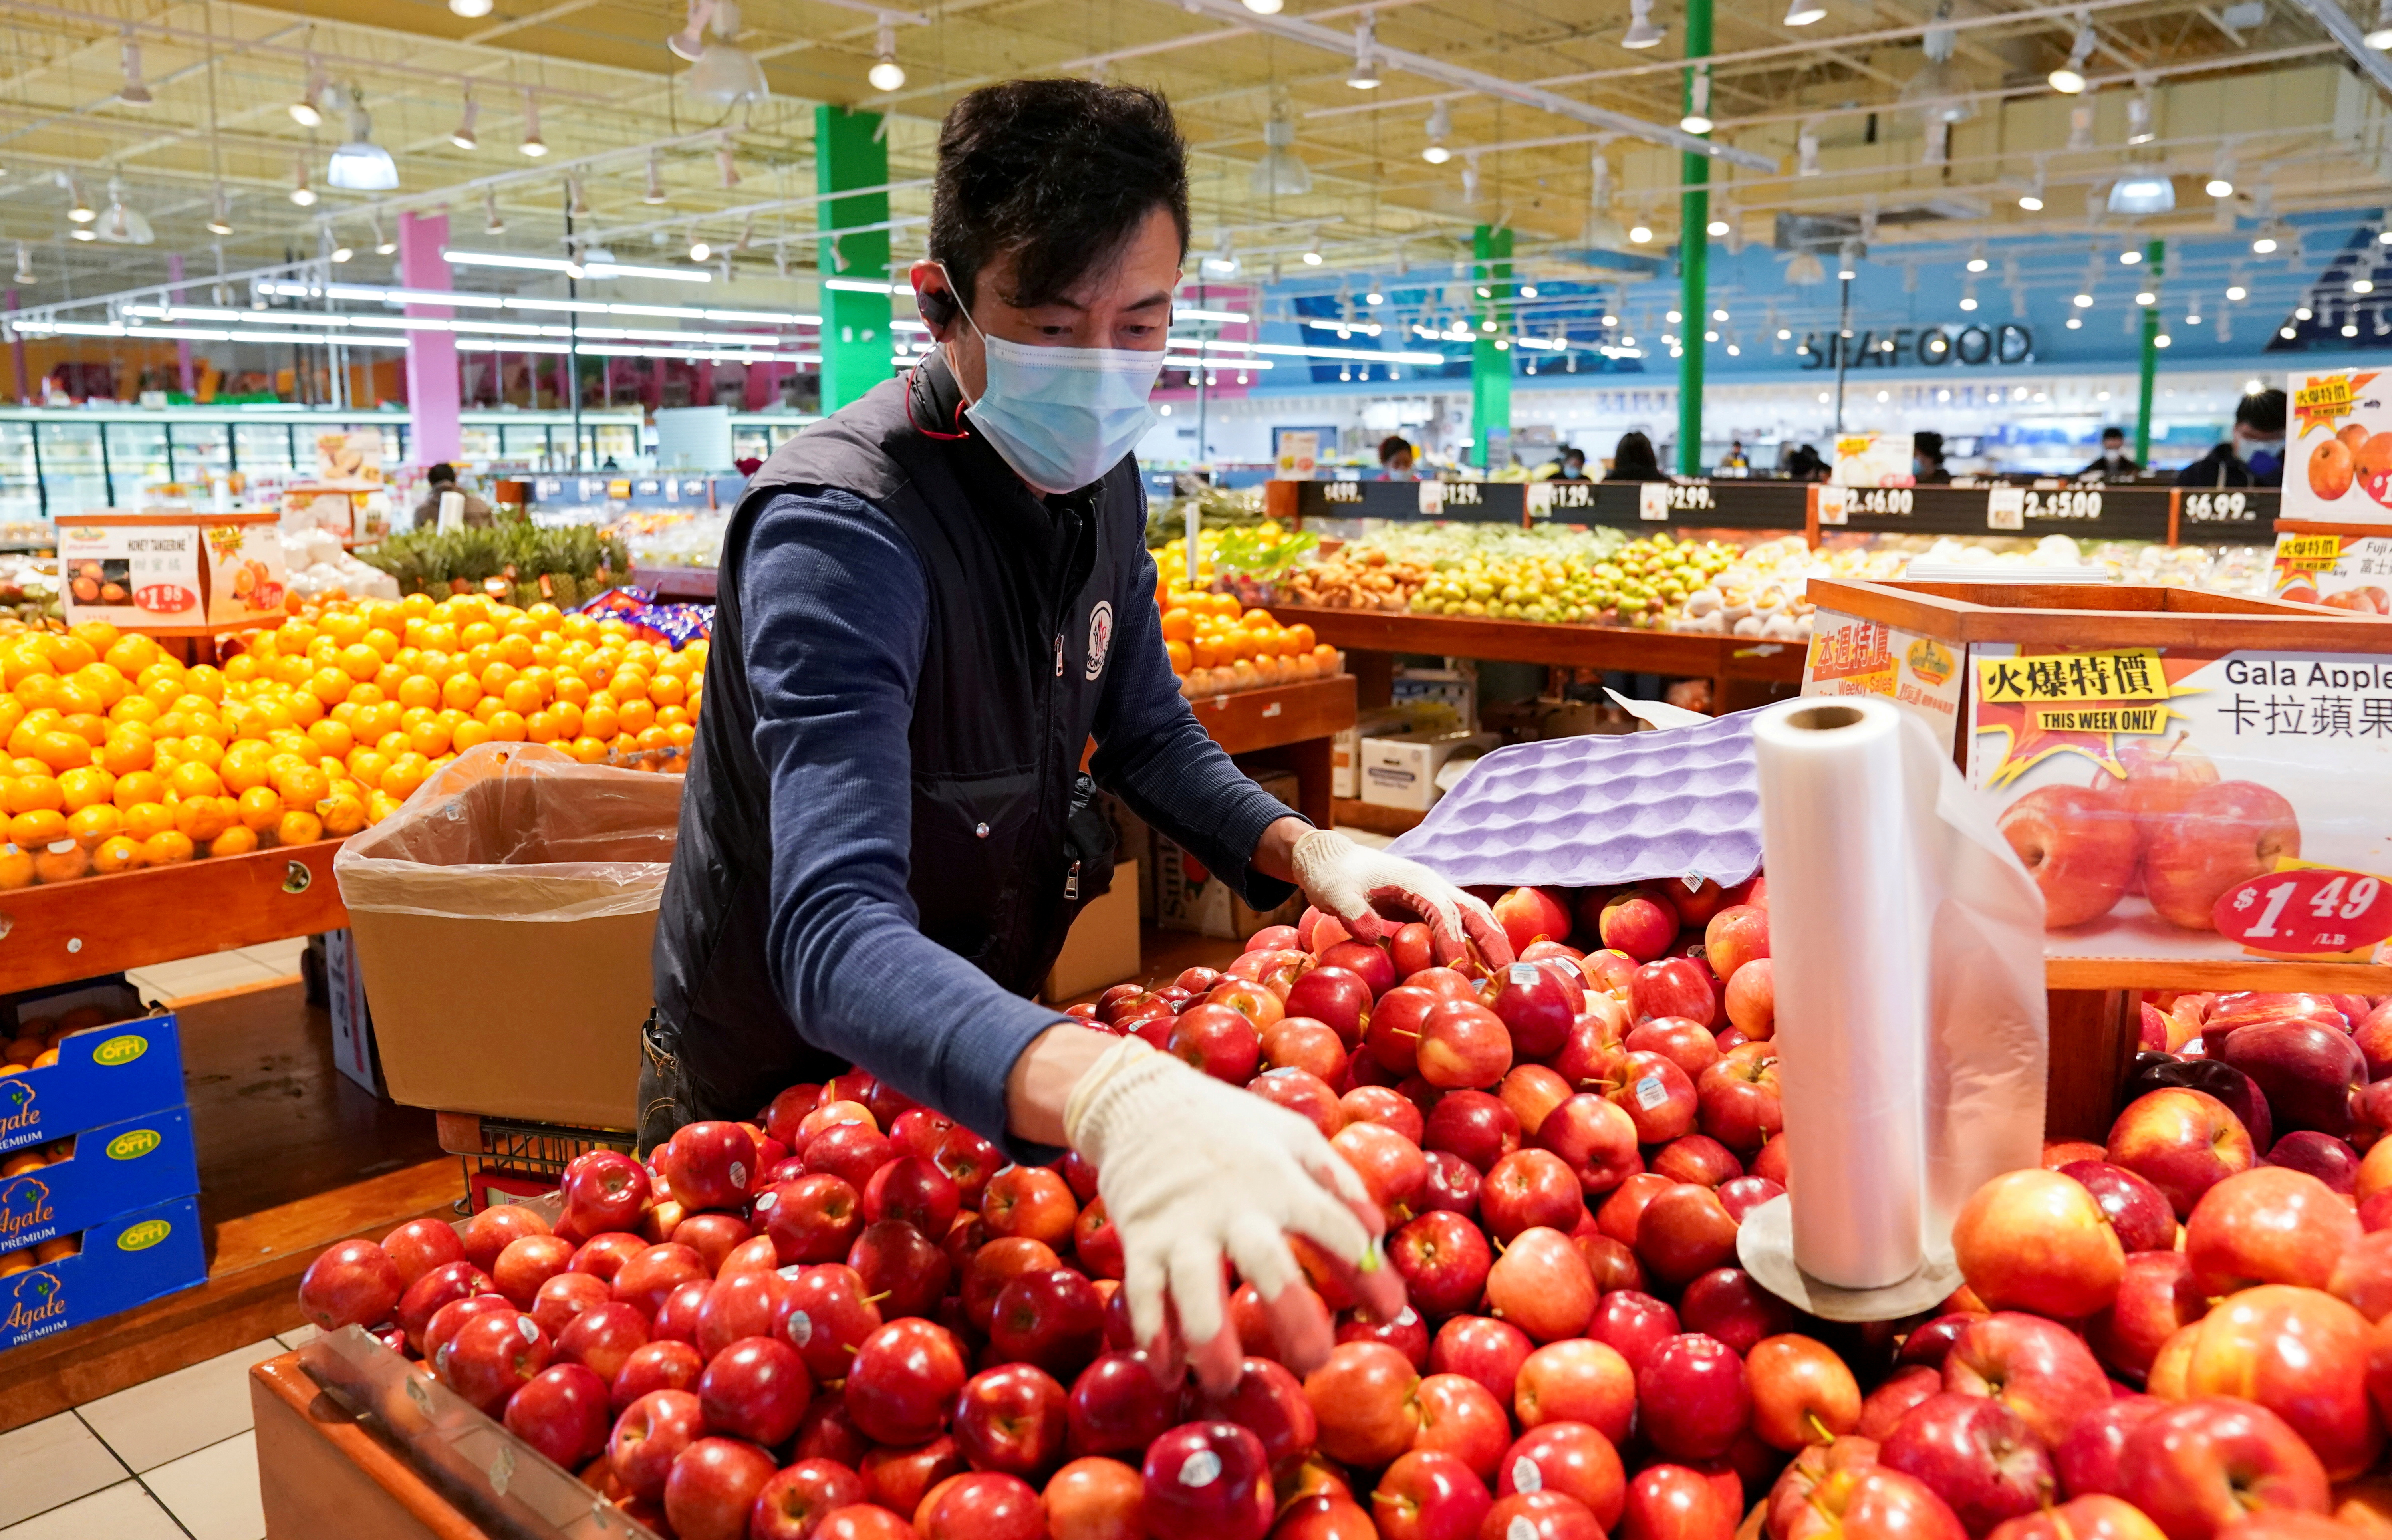 Wearing a mask and gloves, a worker re-stocks apples in an Asian grocery store in Falls Church, Virginia, U.S., April 3, 2020. REUTERS/Kevin Lamarque